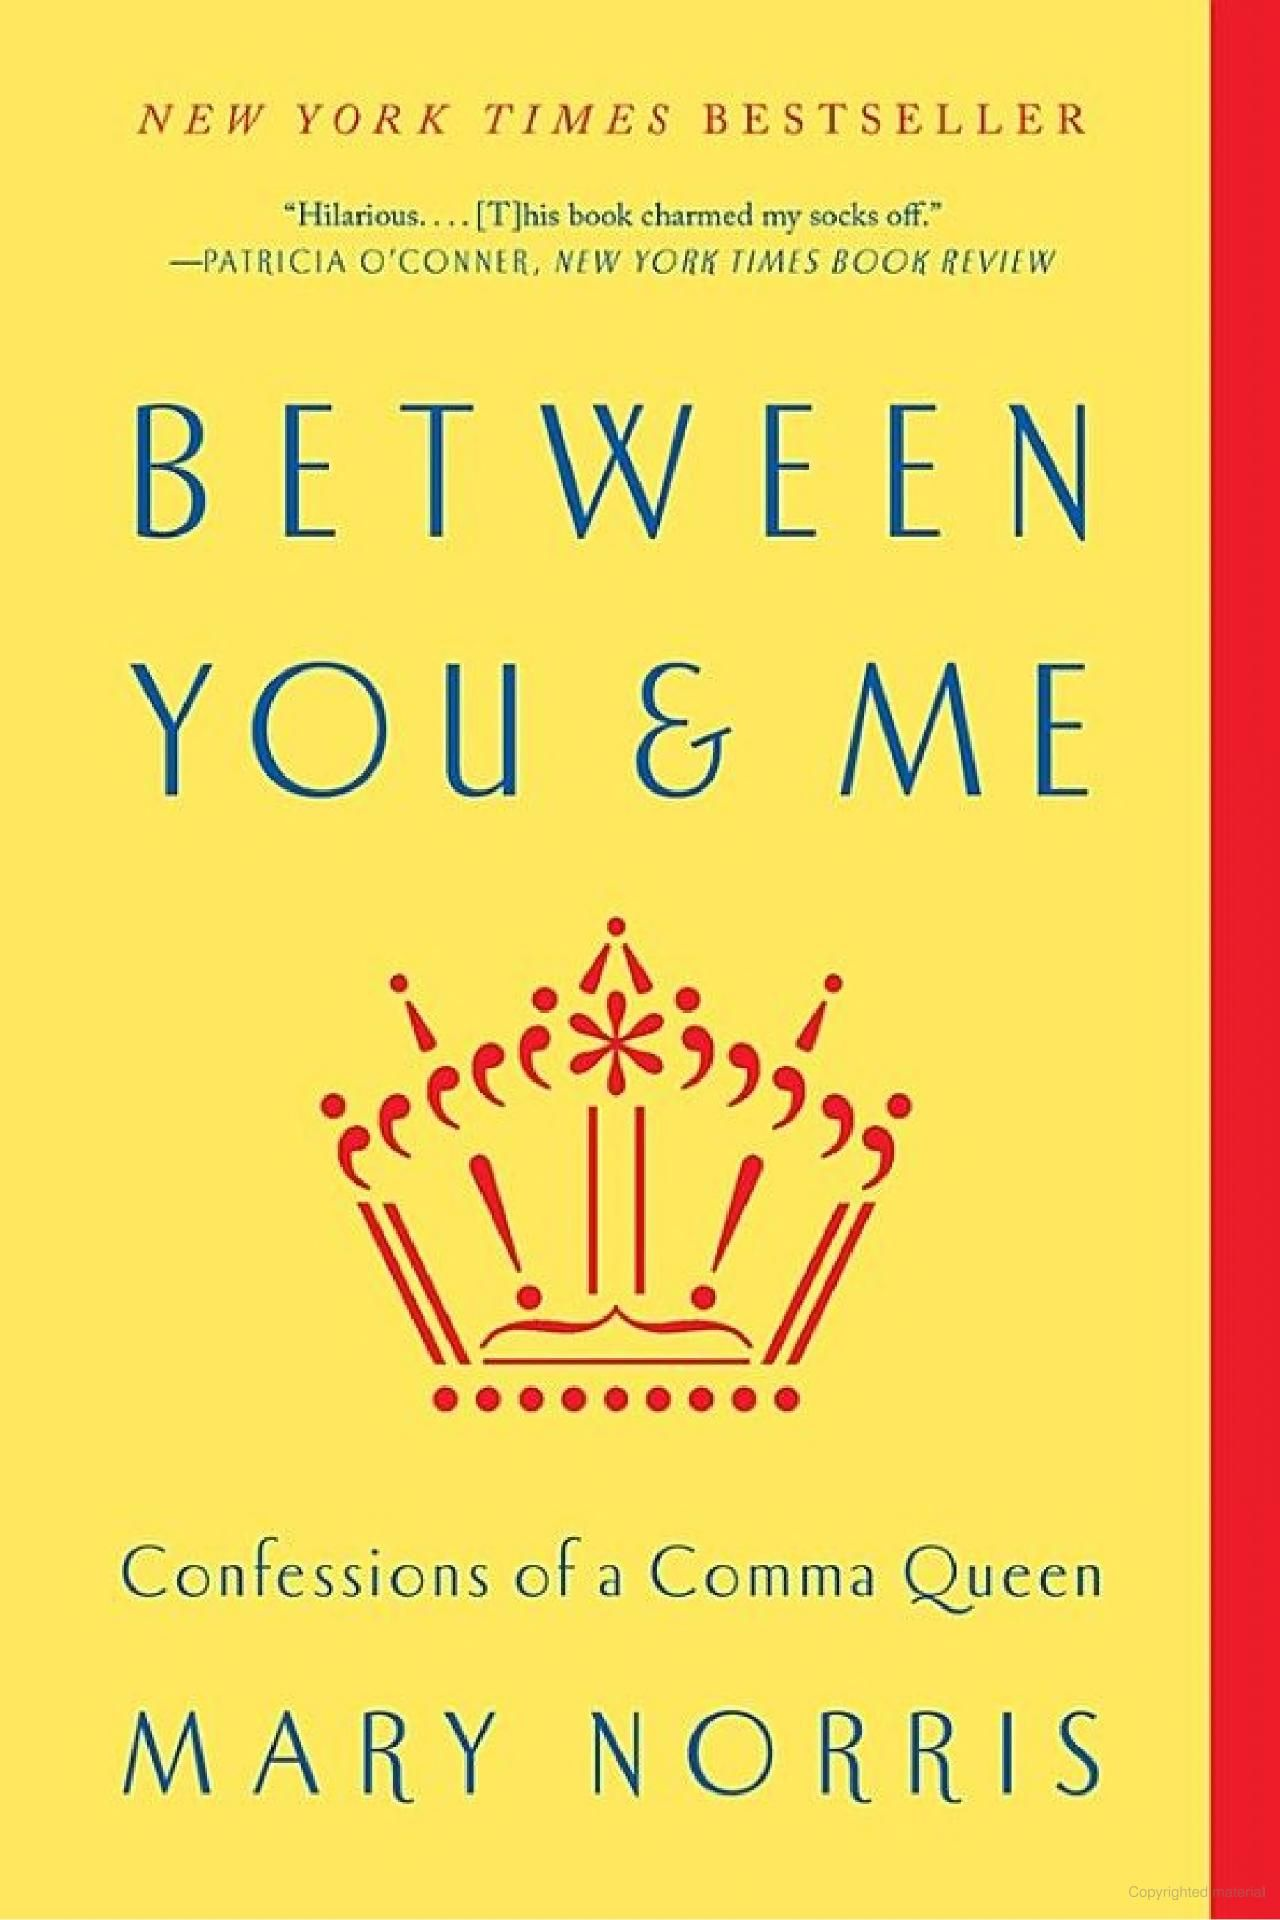 Between you me confessions of a comma queen mary